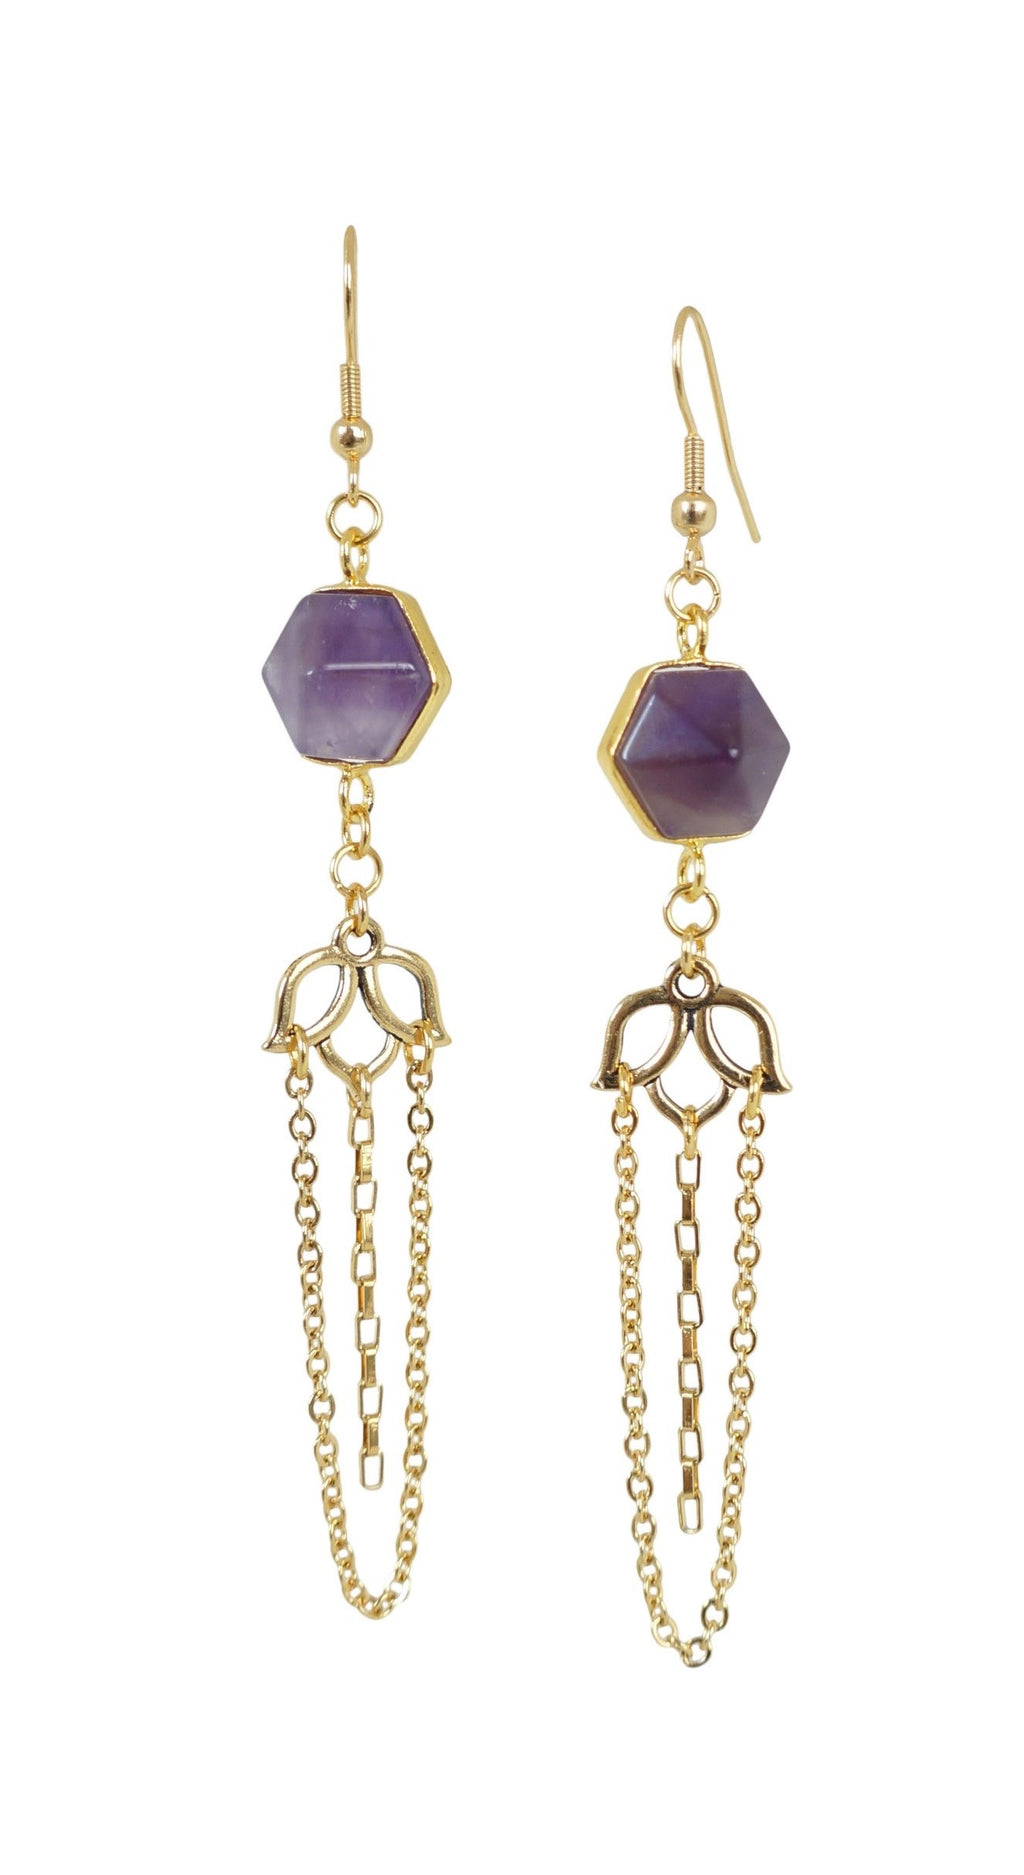 Intention Earrings - Carolyn Hearn Designs